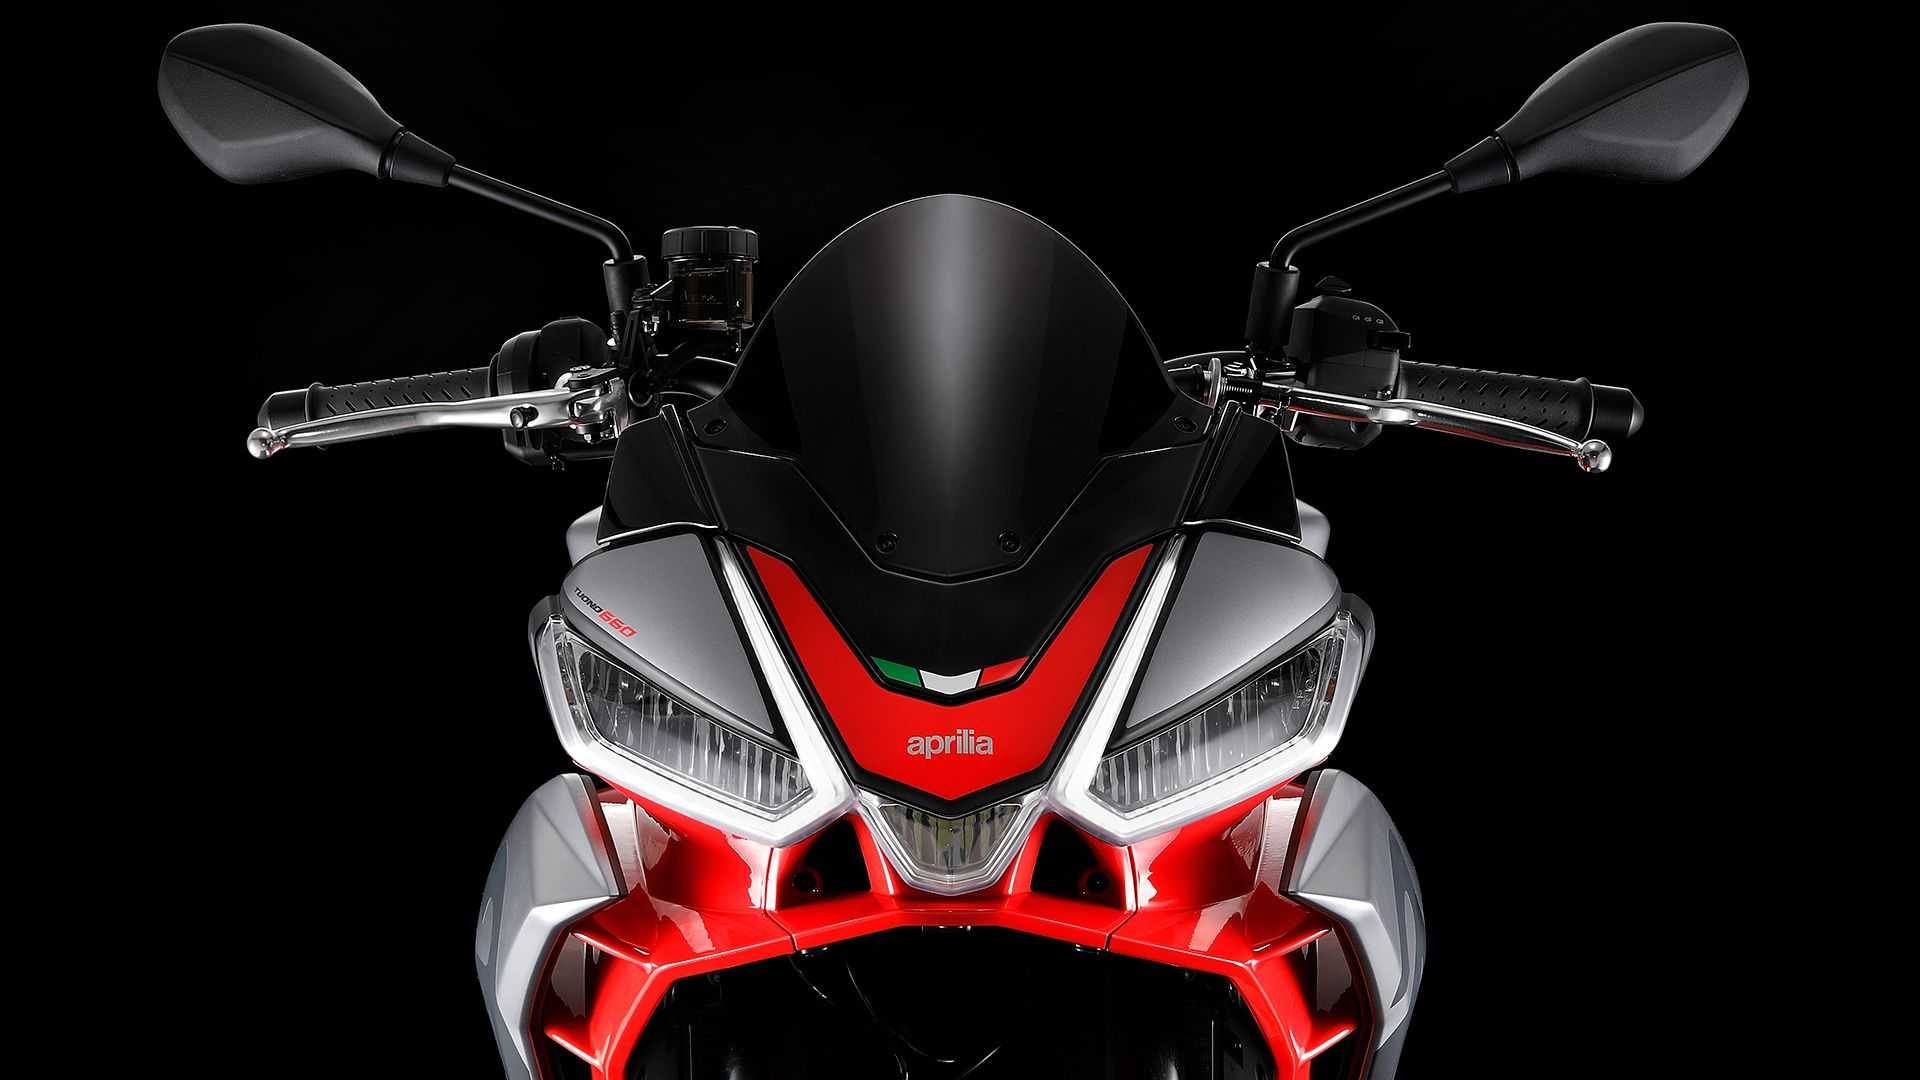 Aprilia Tuono 660 India launch this year: What you should know